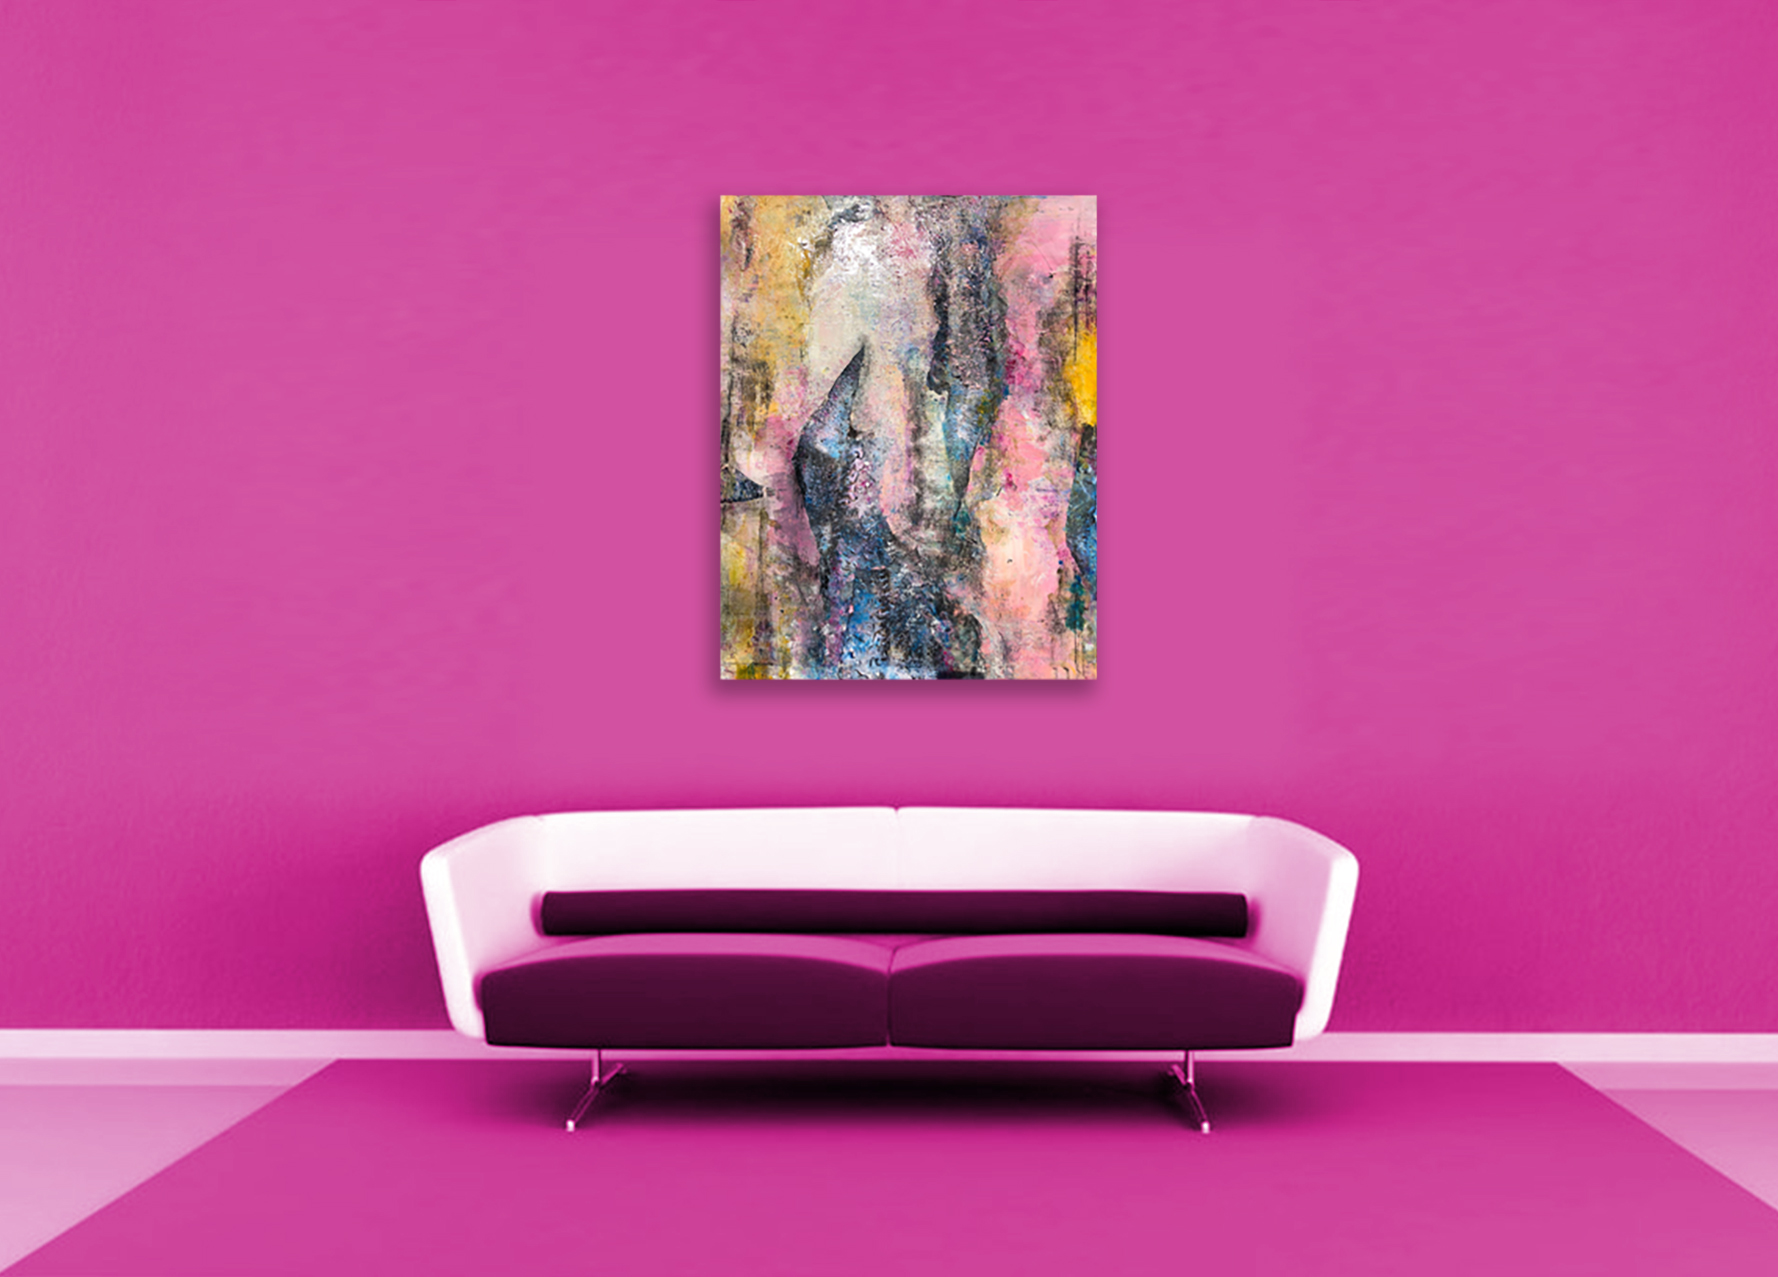 A piece applied in style. Pink on pink.